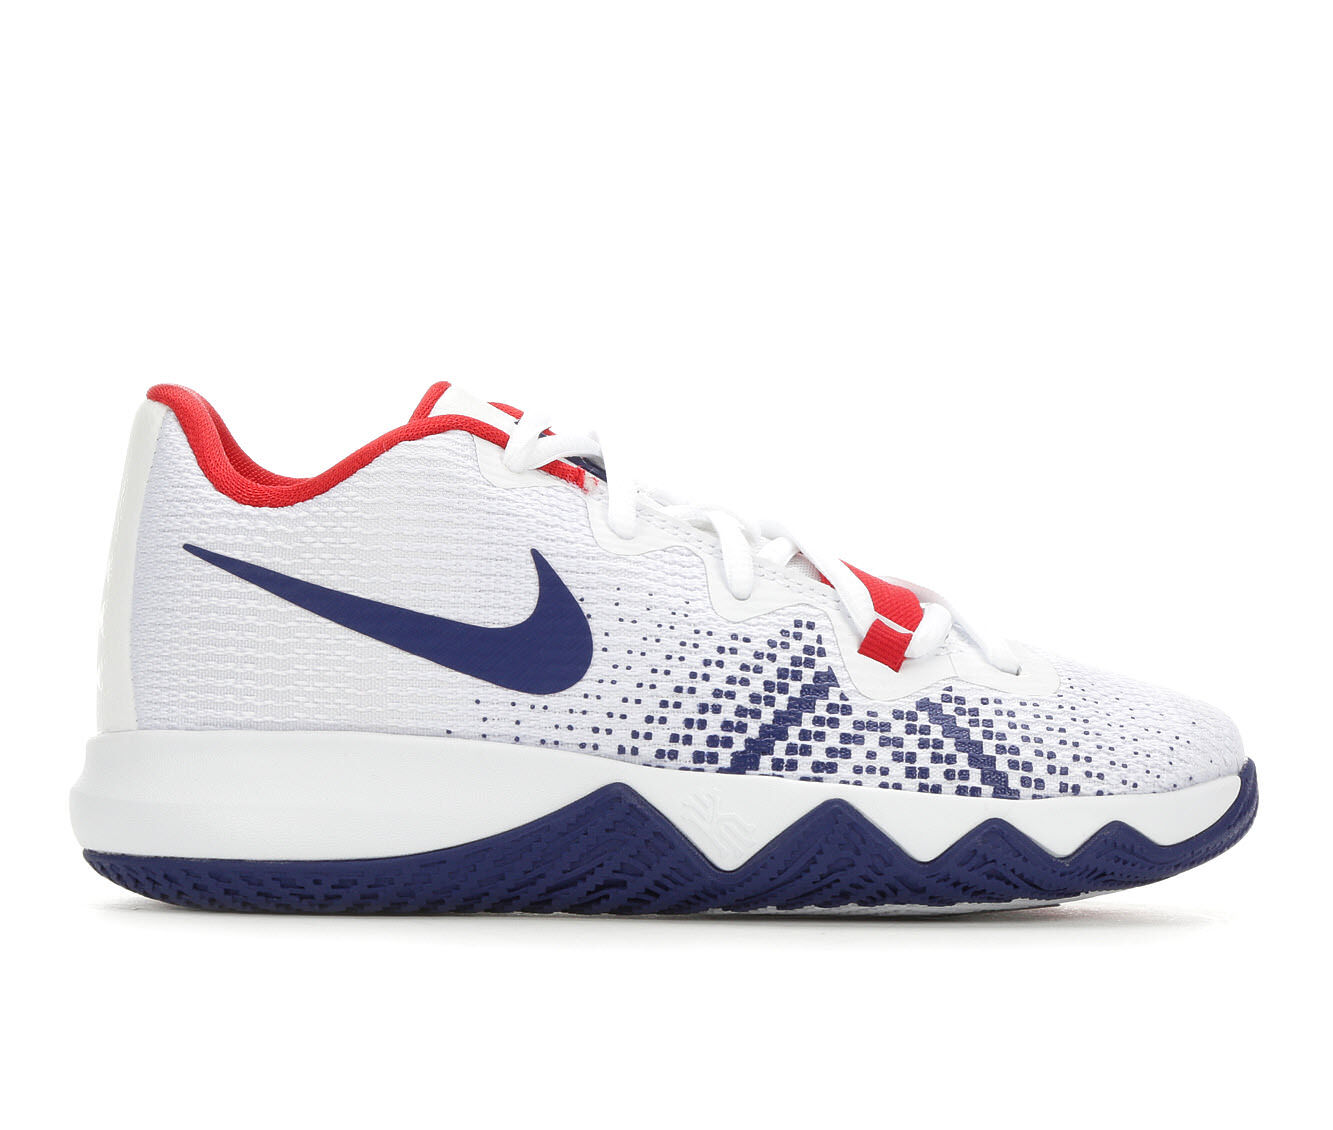 ae8713c3ab8 ... promo code boys nike kyrie flytrap 10.5 3 high top basketball shoes shoe  carnival af212 29a62